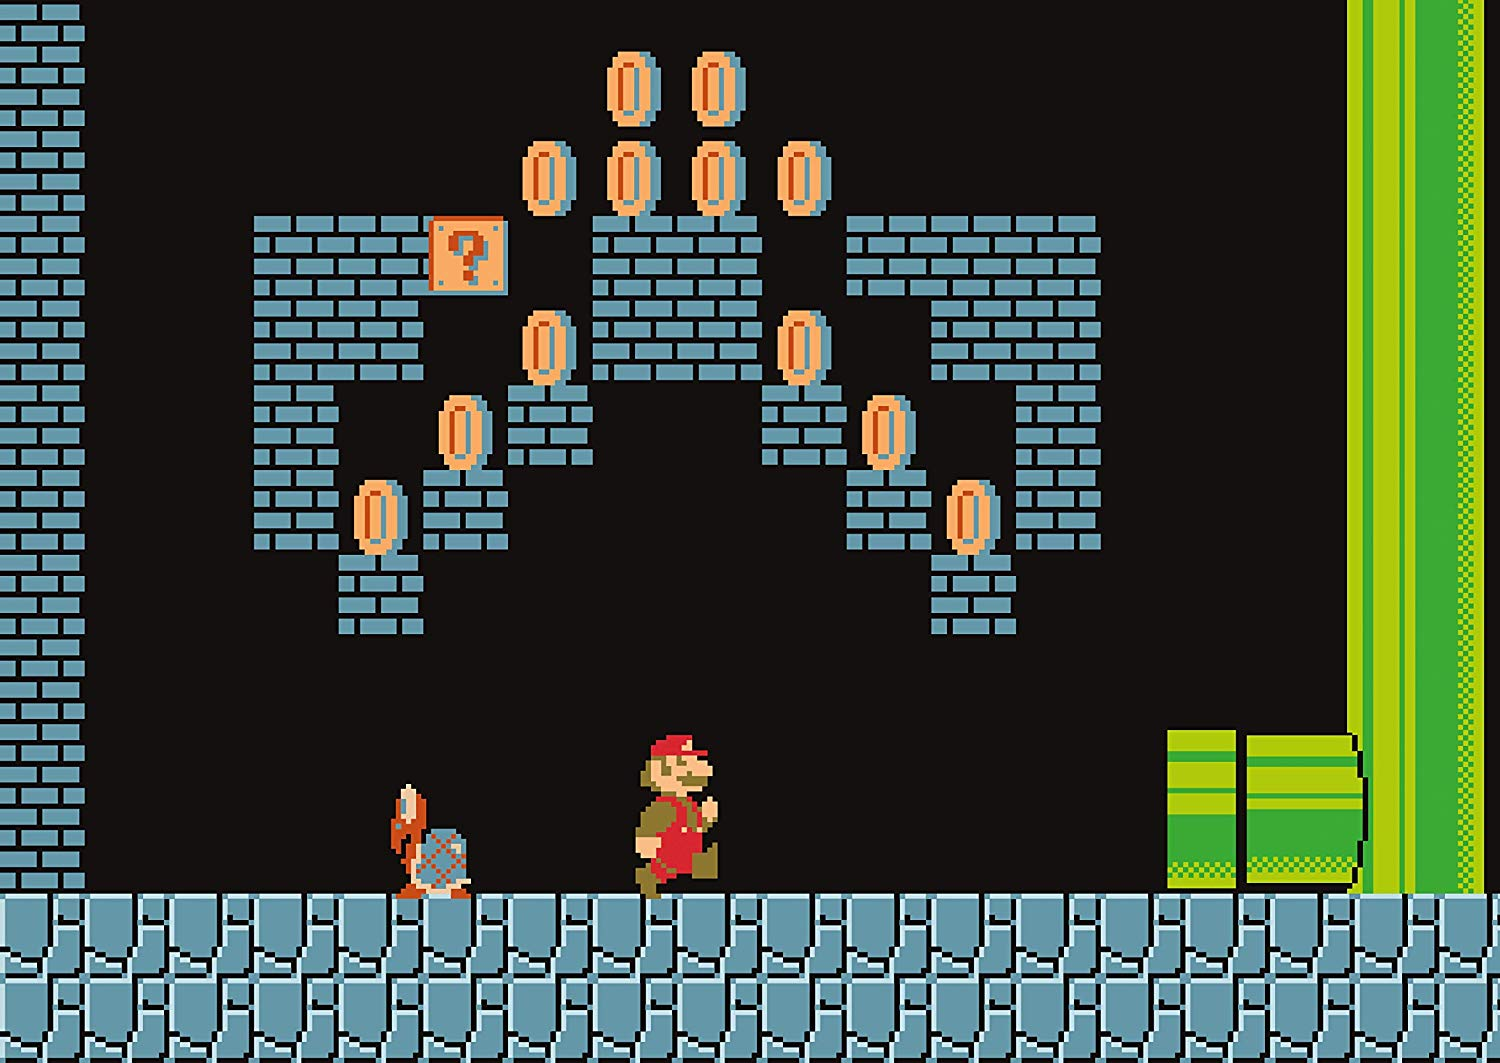 winning-moves-super-mario-bros-underground-adventures-500-teile-puzzle-winning-moves-11491